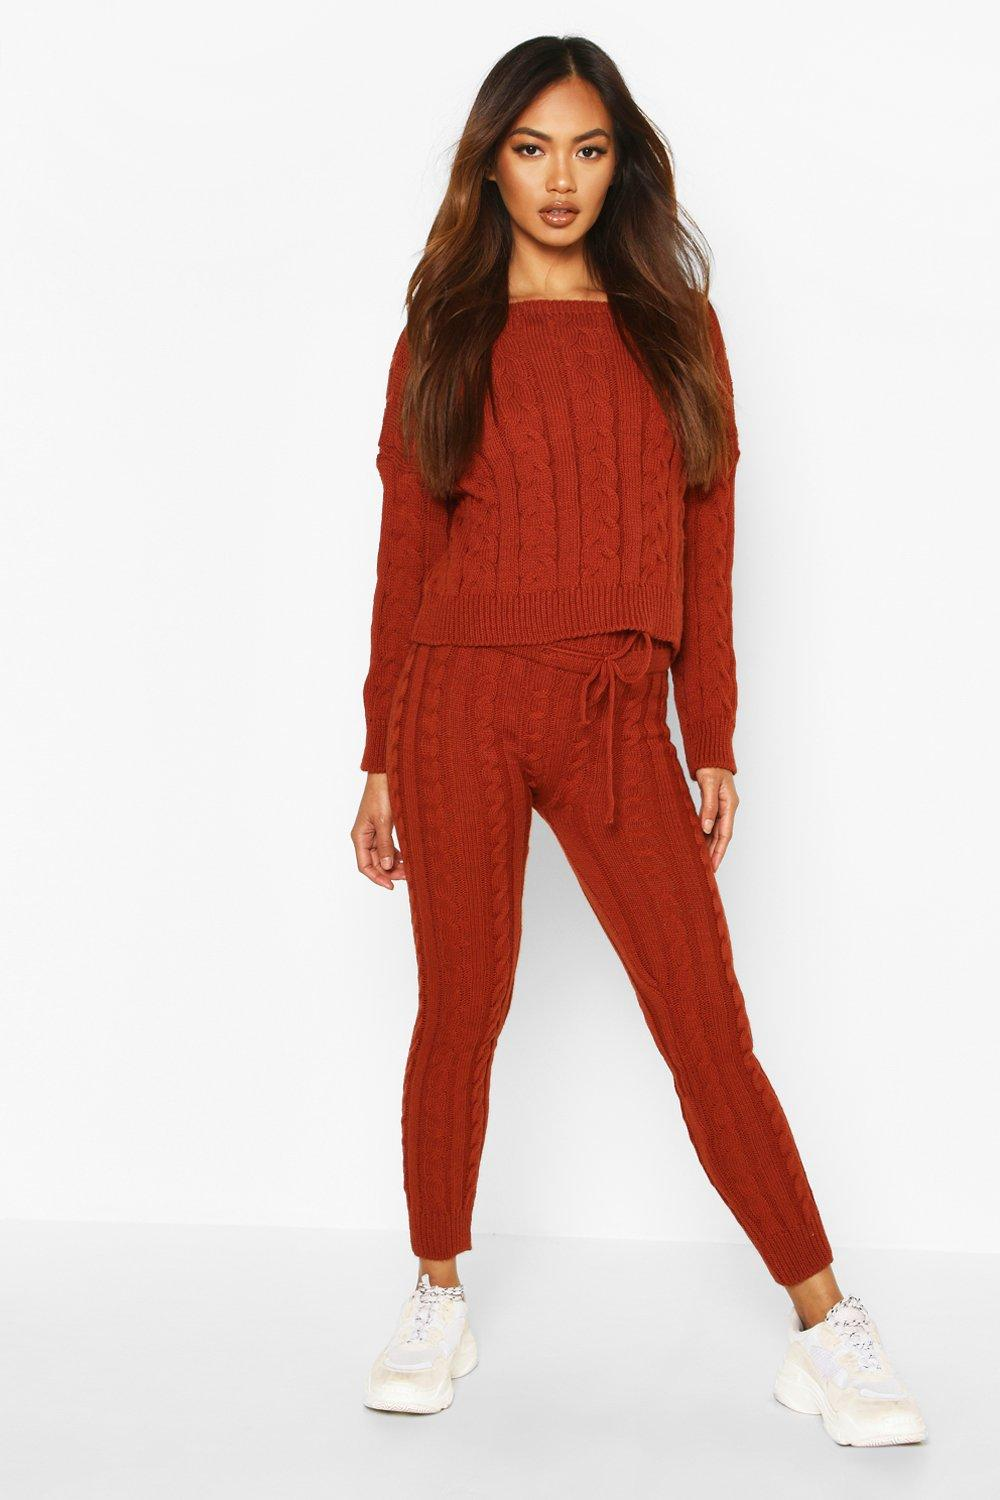 Womens Cable Knit Crew Neck Lounge Set - rust - S/M, Rust - Boohoo.com